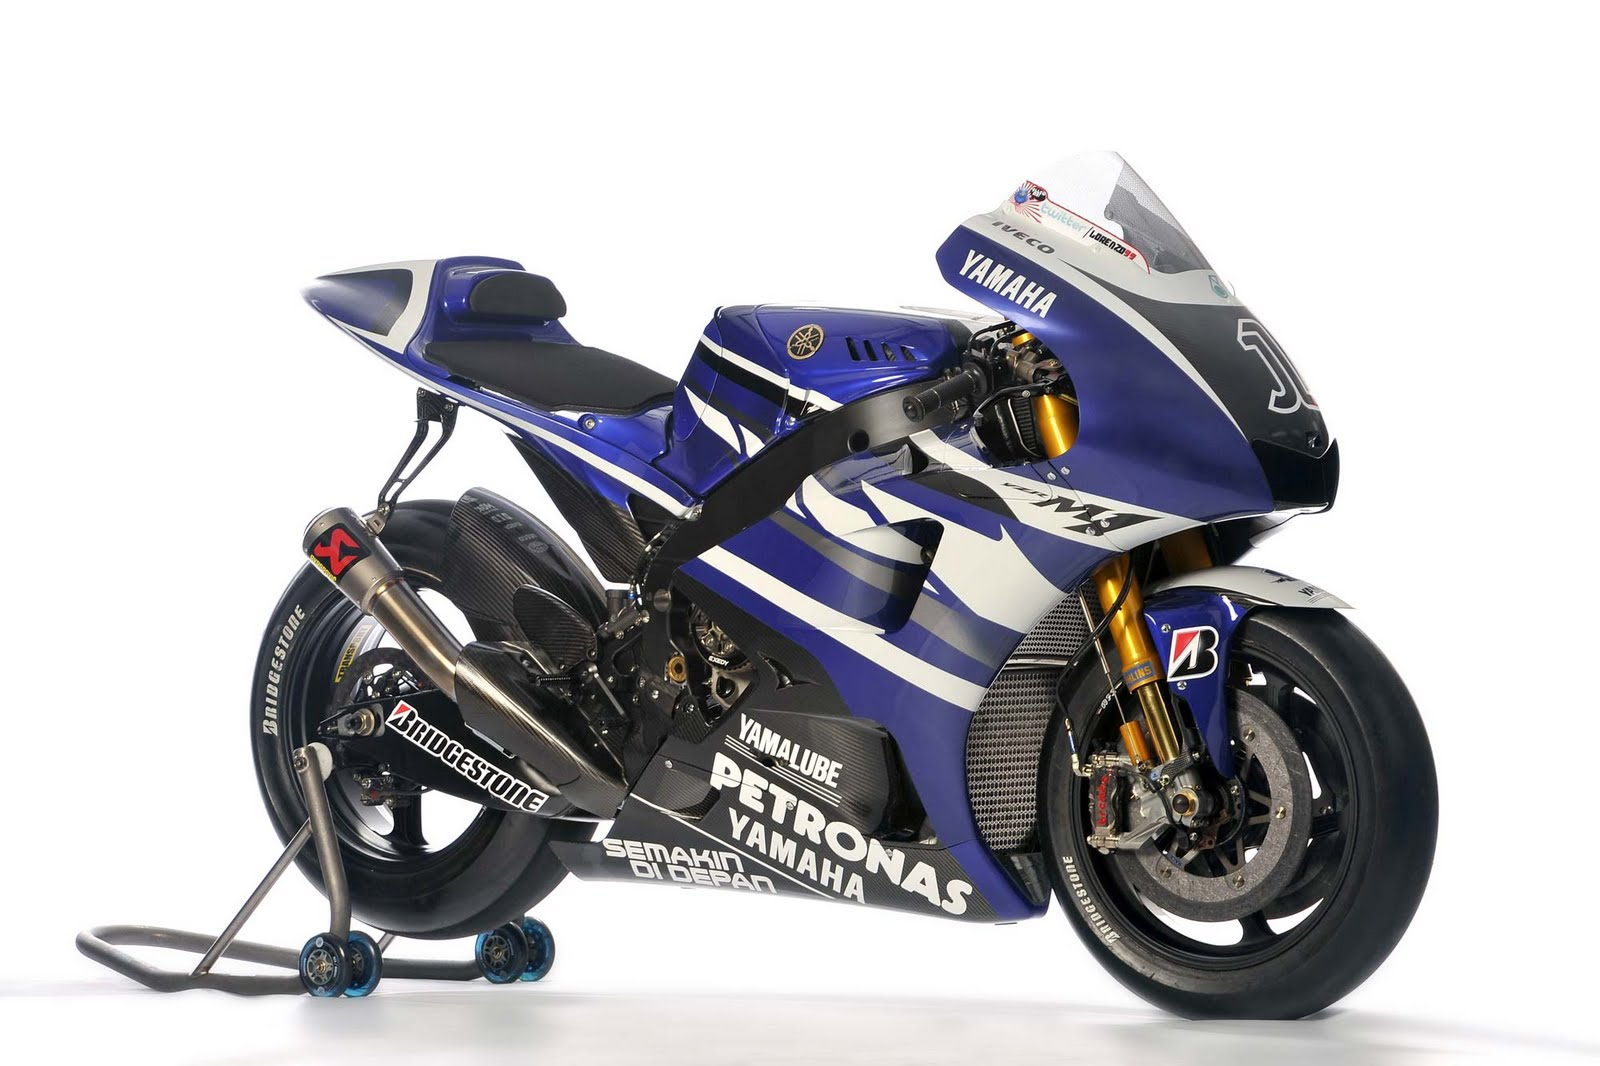 top motorcycle wallpapers 2011 yamaha yzr m1 motogp pictures. Black Bedroom Furniture Sets. Home Design Ideas